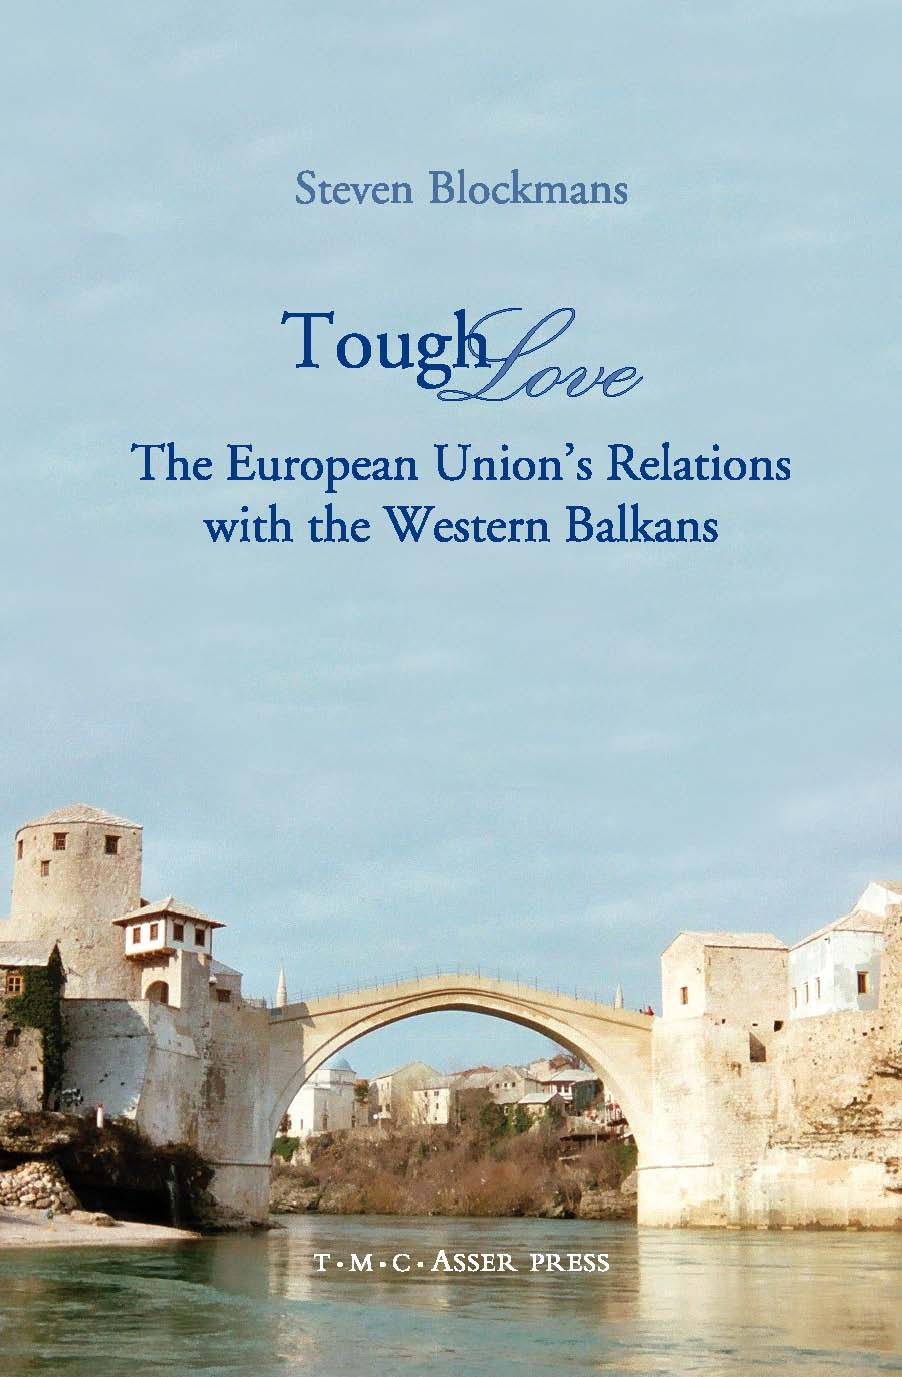 Tough Love - The European Union's Relations with the Western Balkans